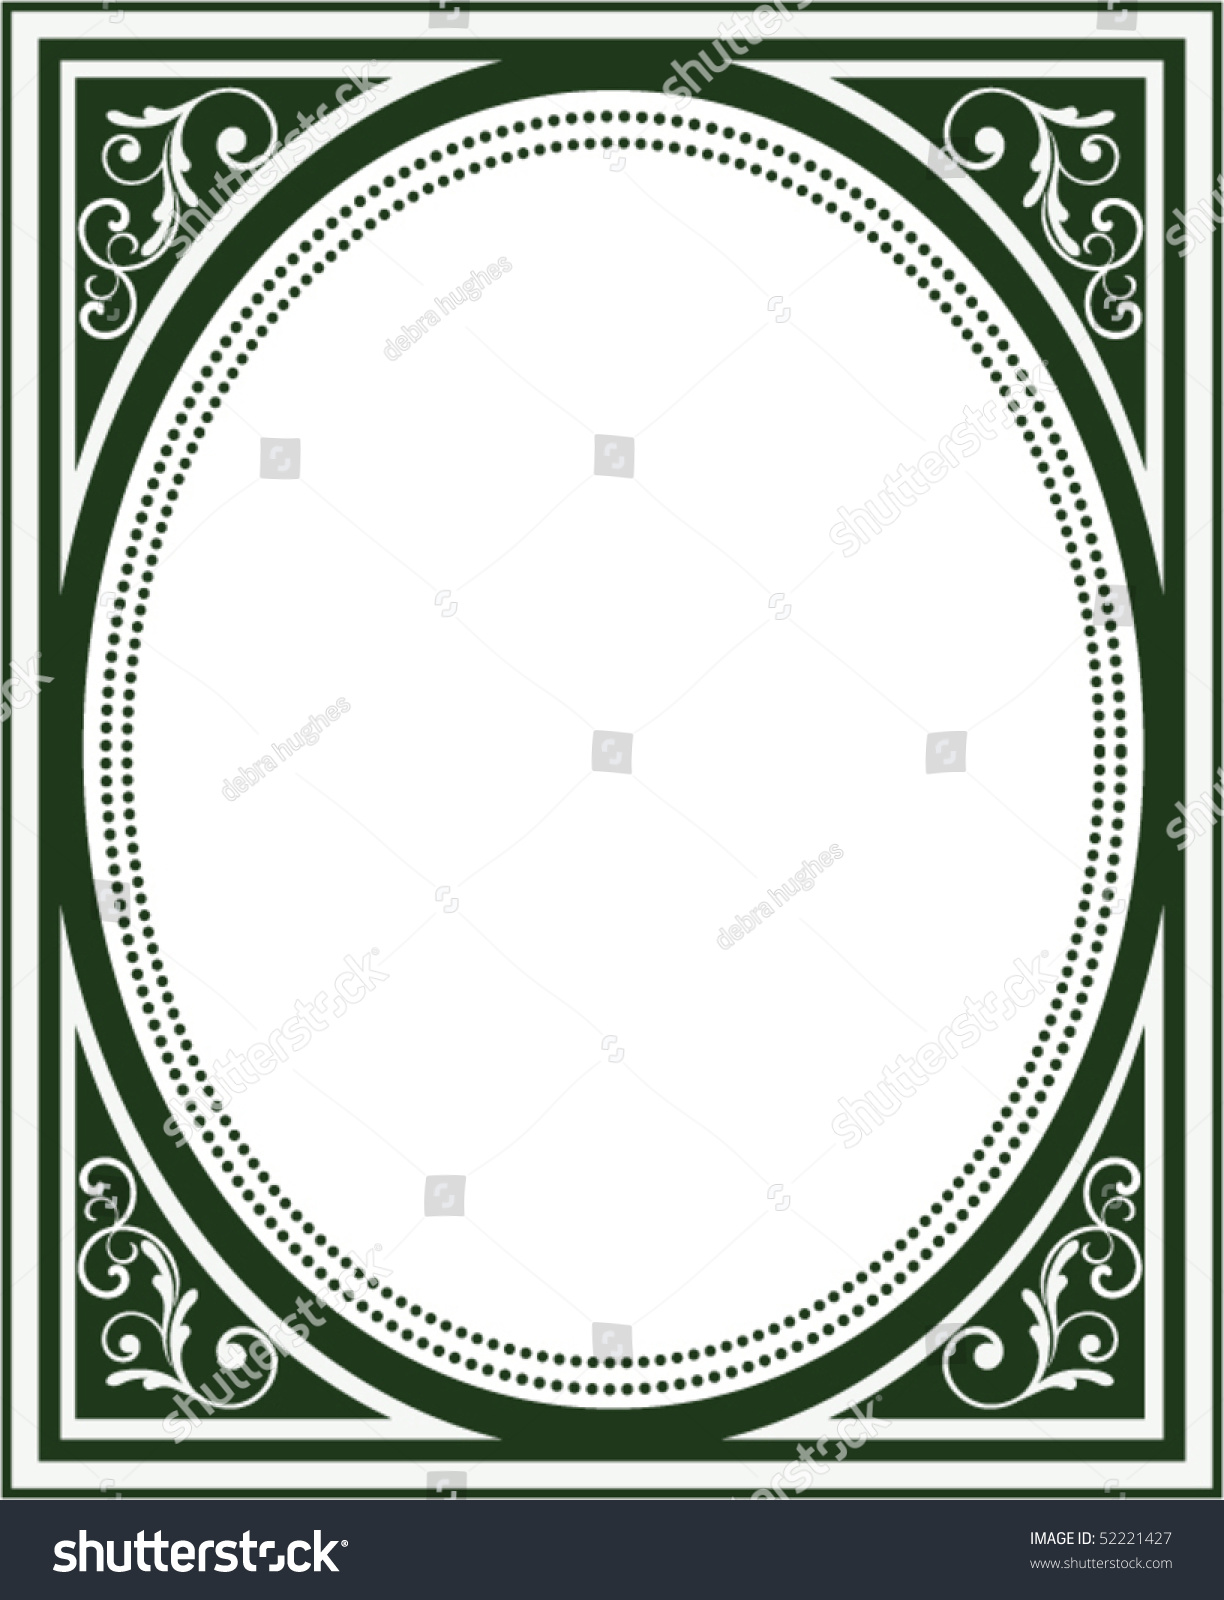 Old Book Cover Vector : Old book cover frame stock vector shutterstock